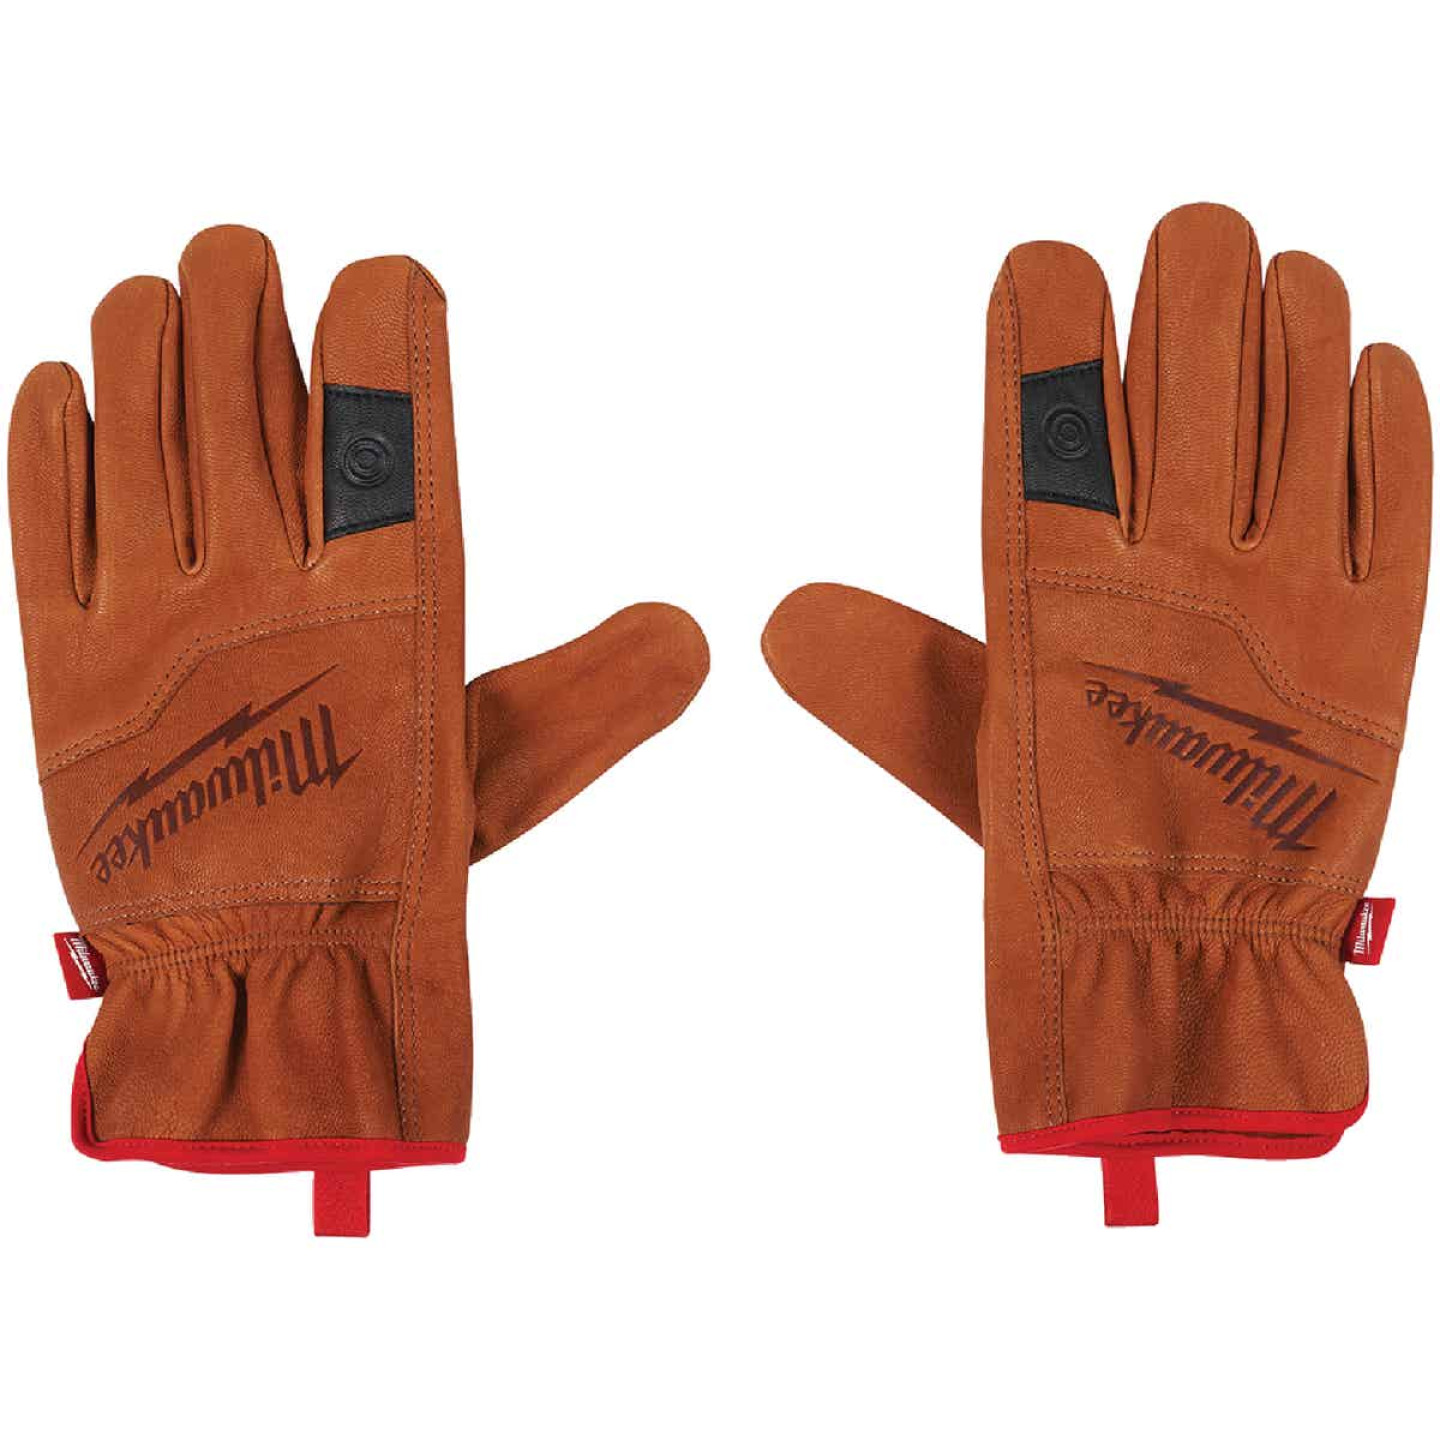 Milwaukee Men's Large Goatskin Leather Work Gloves Image 2